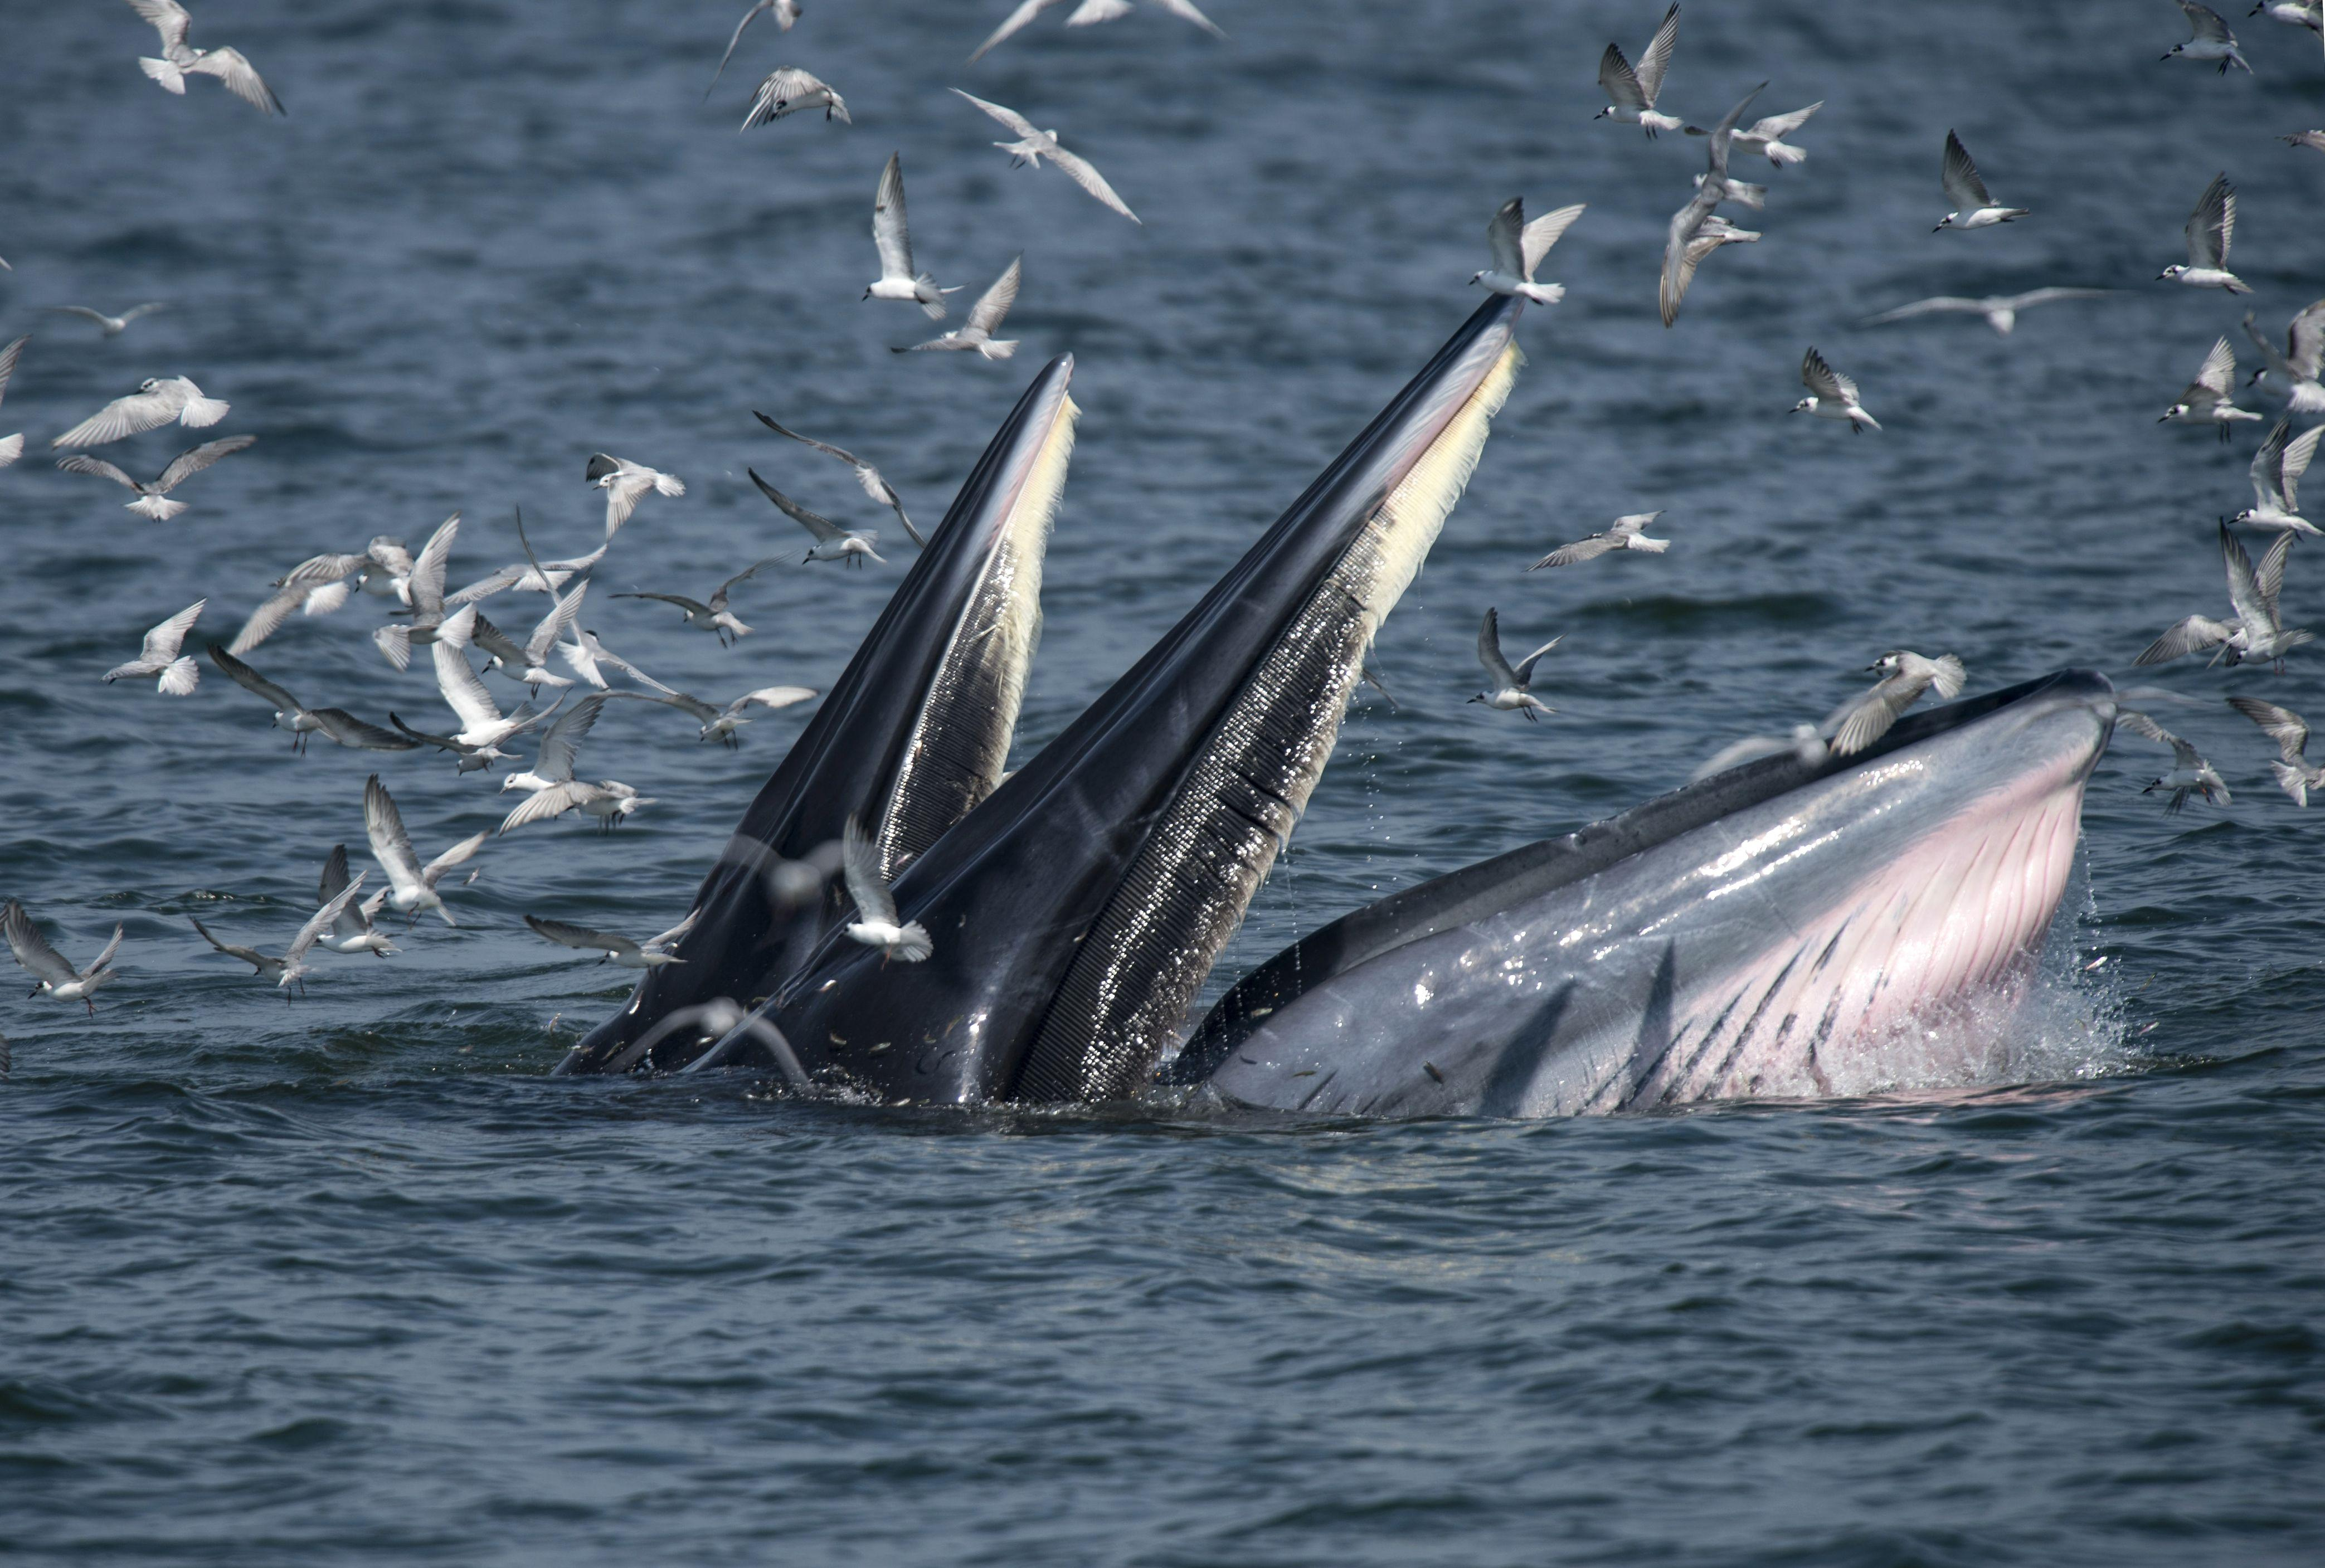 Lucky escape for diver trapped in whale's jaws